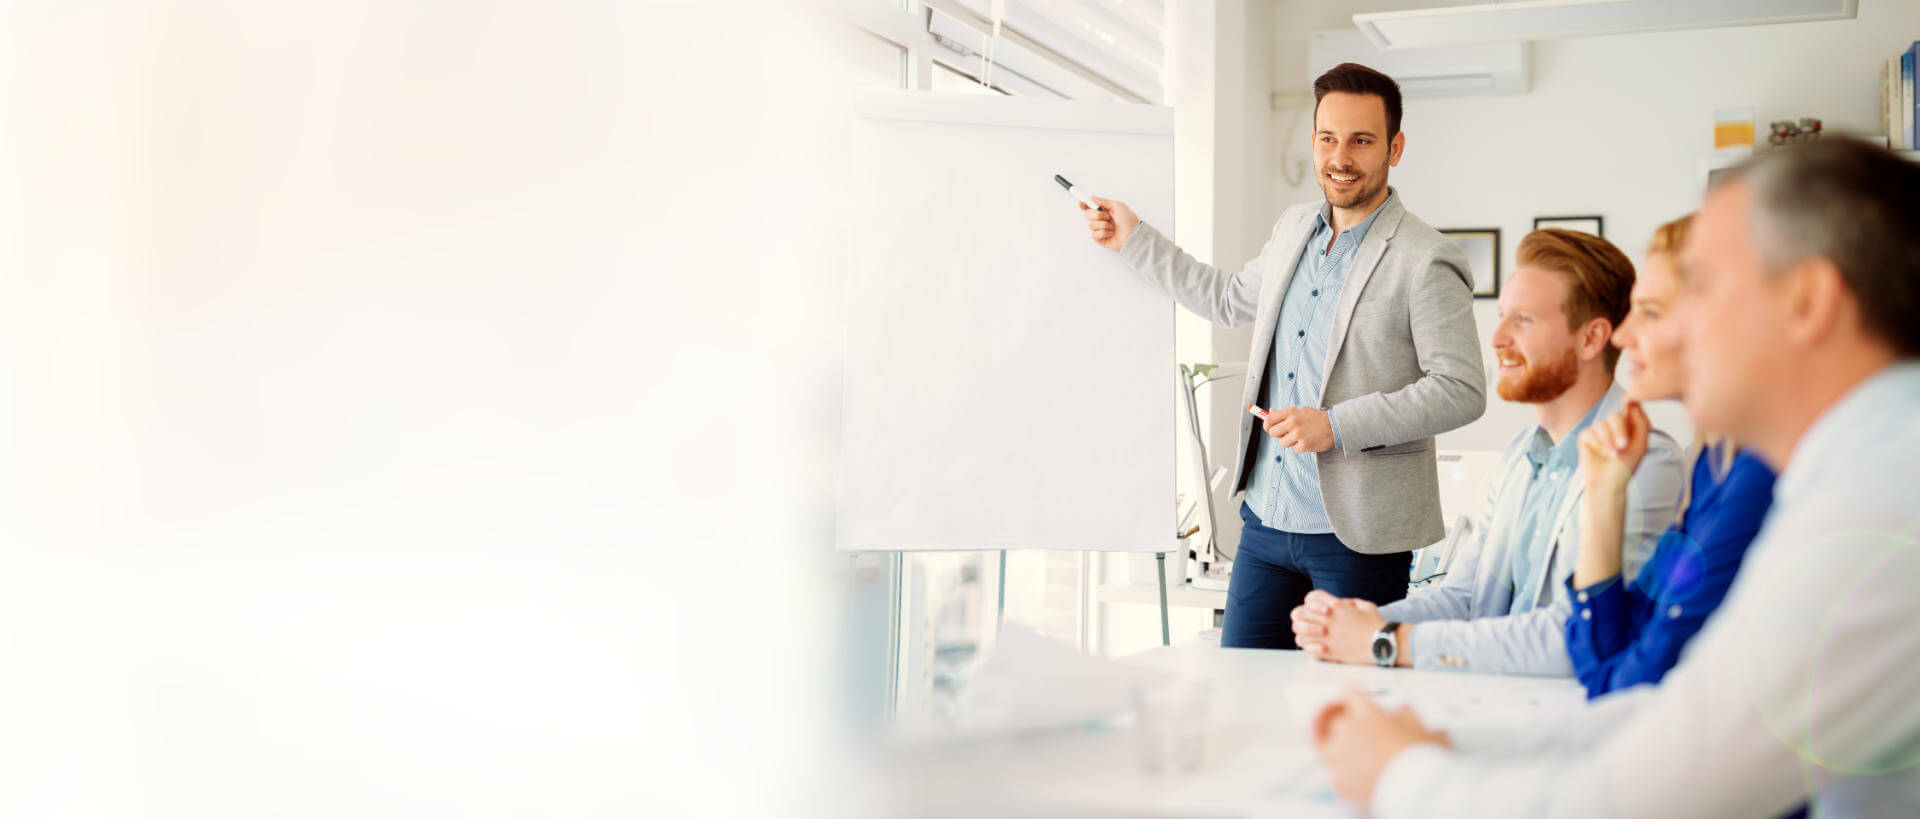 Man giving presentation to group